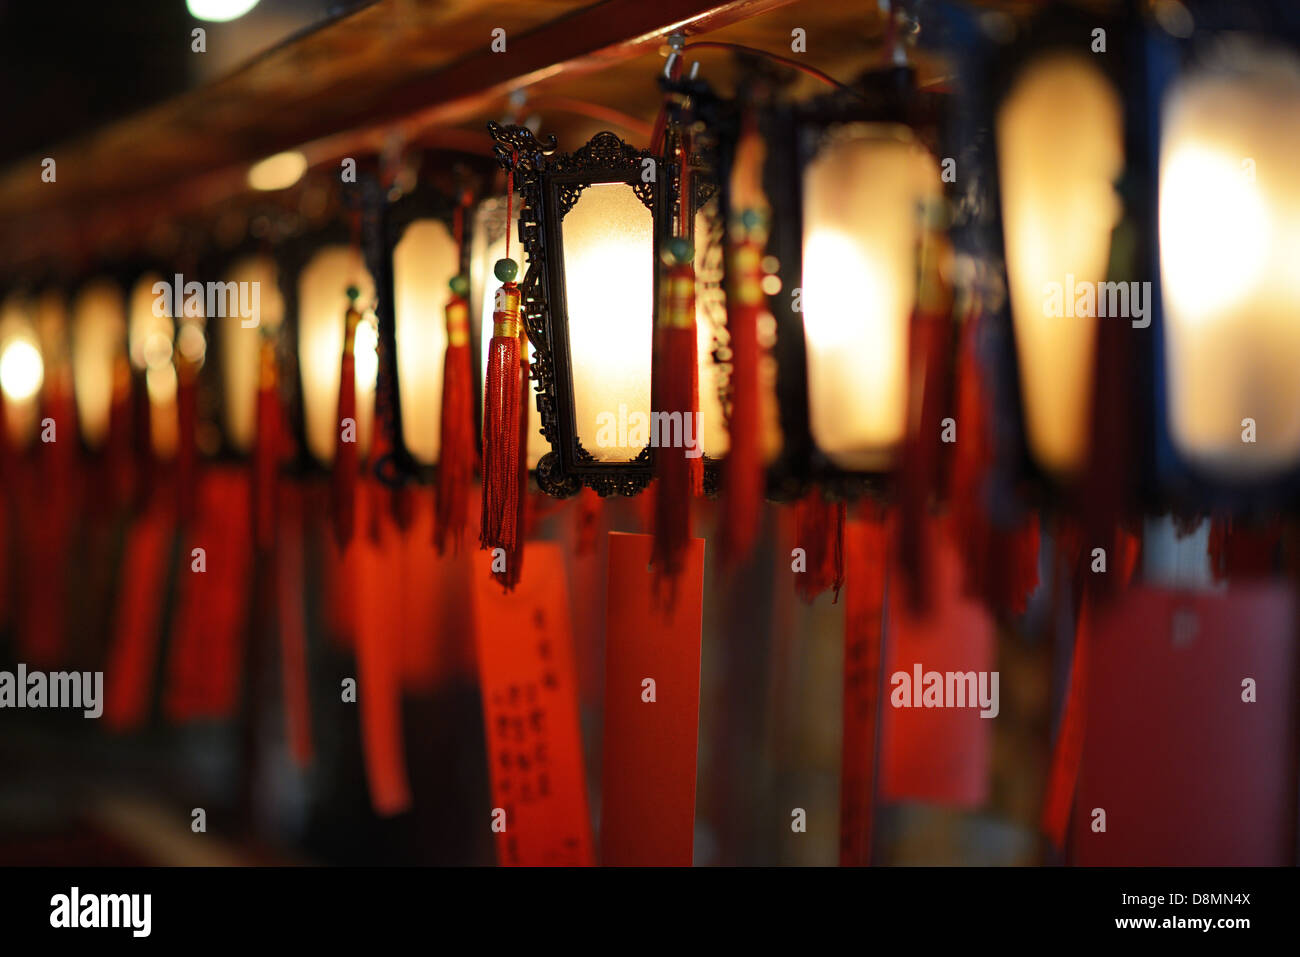 Interior lanterns of Man Mo Temple in Hong Kong, China. - Stock Image